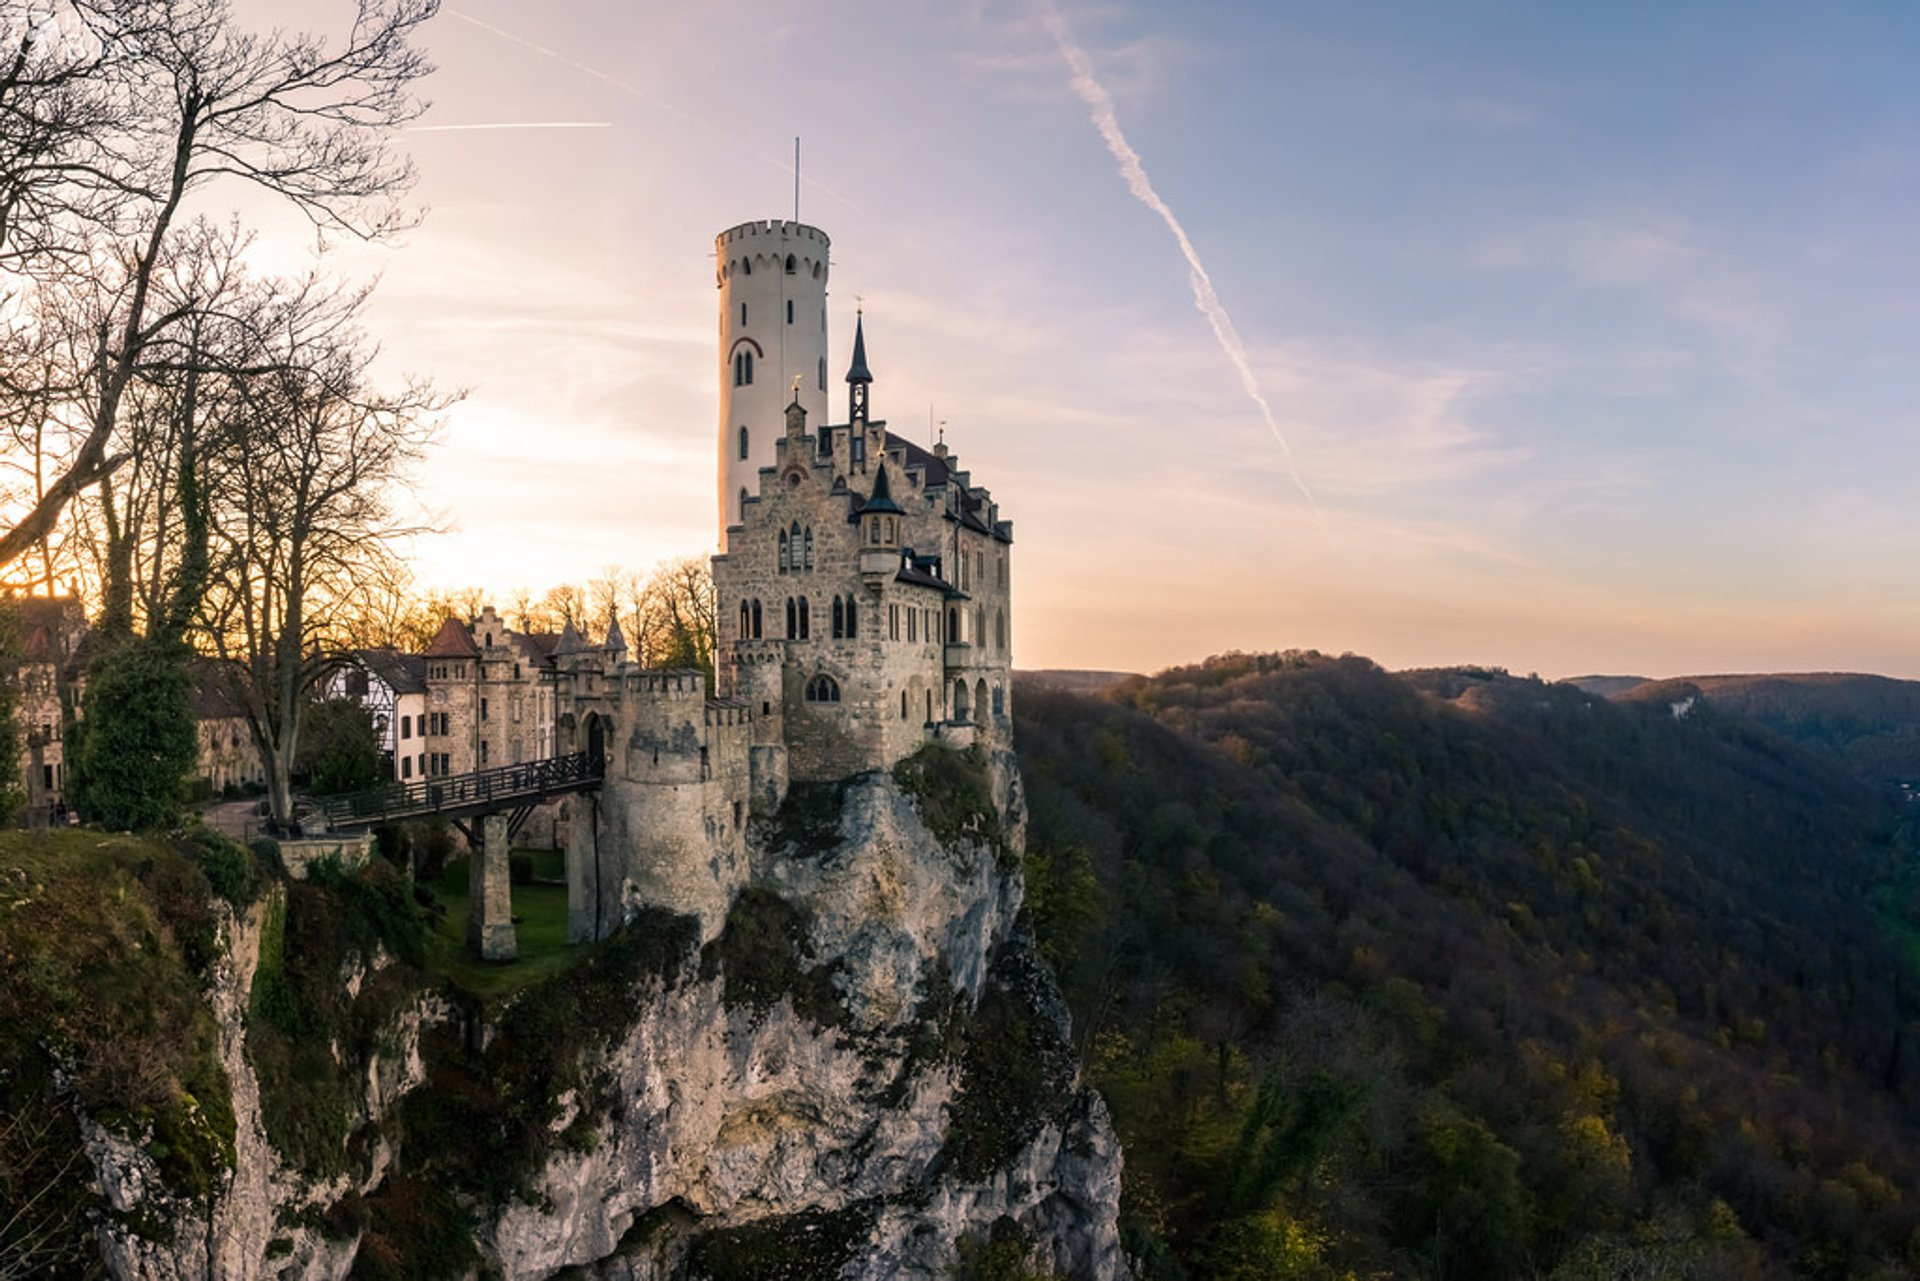 Lichtenstein Castle in Germany 2020 - Best Time